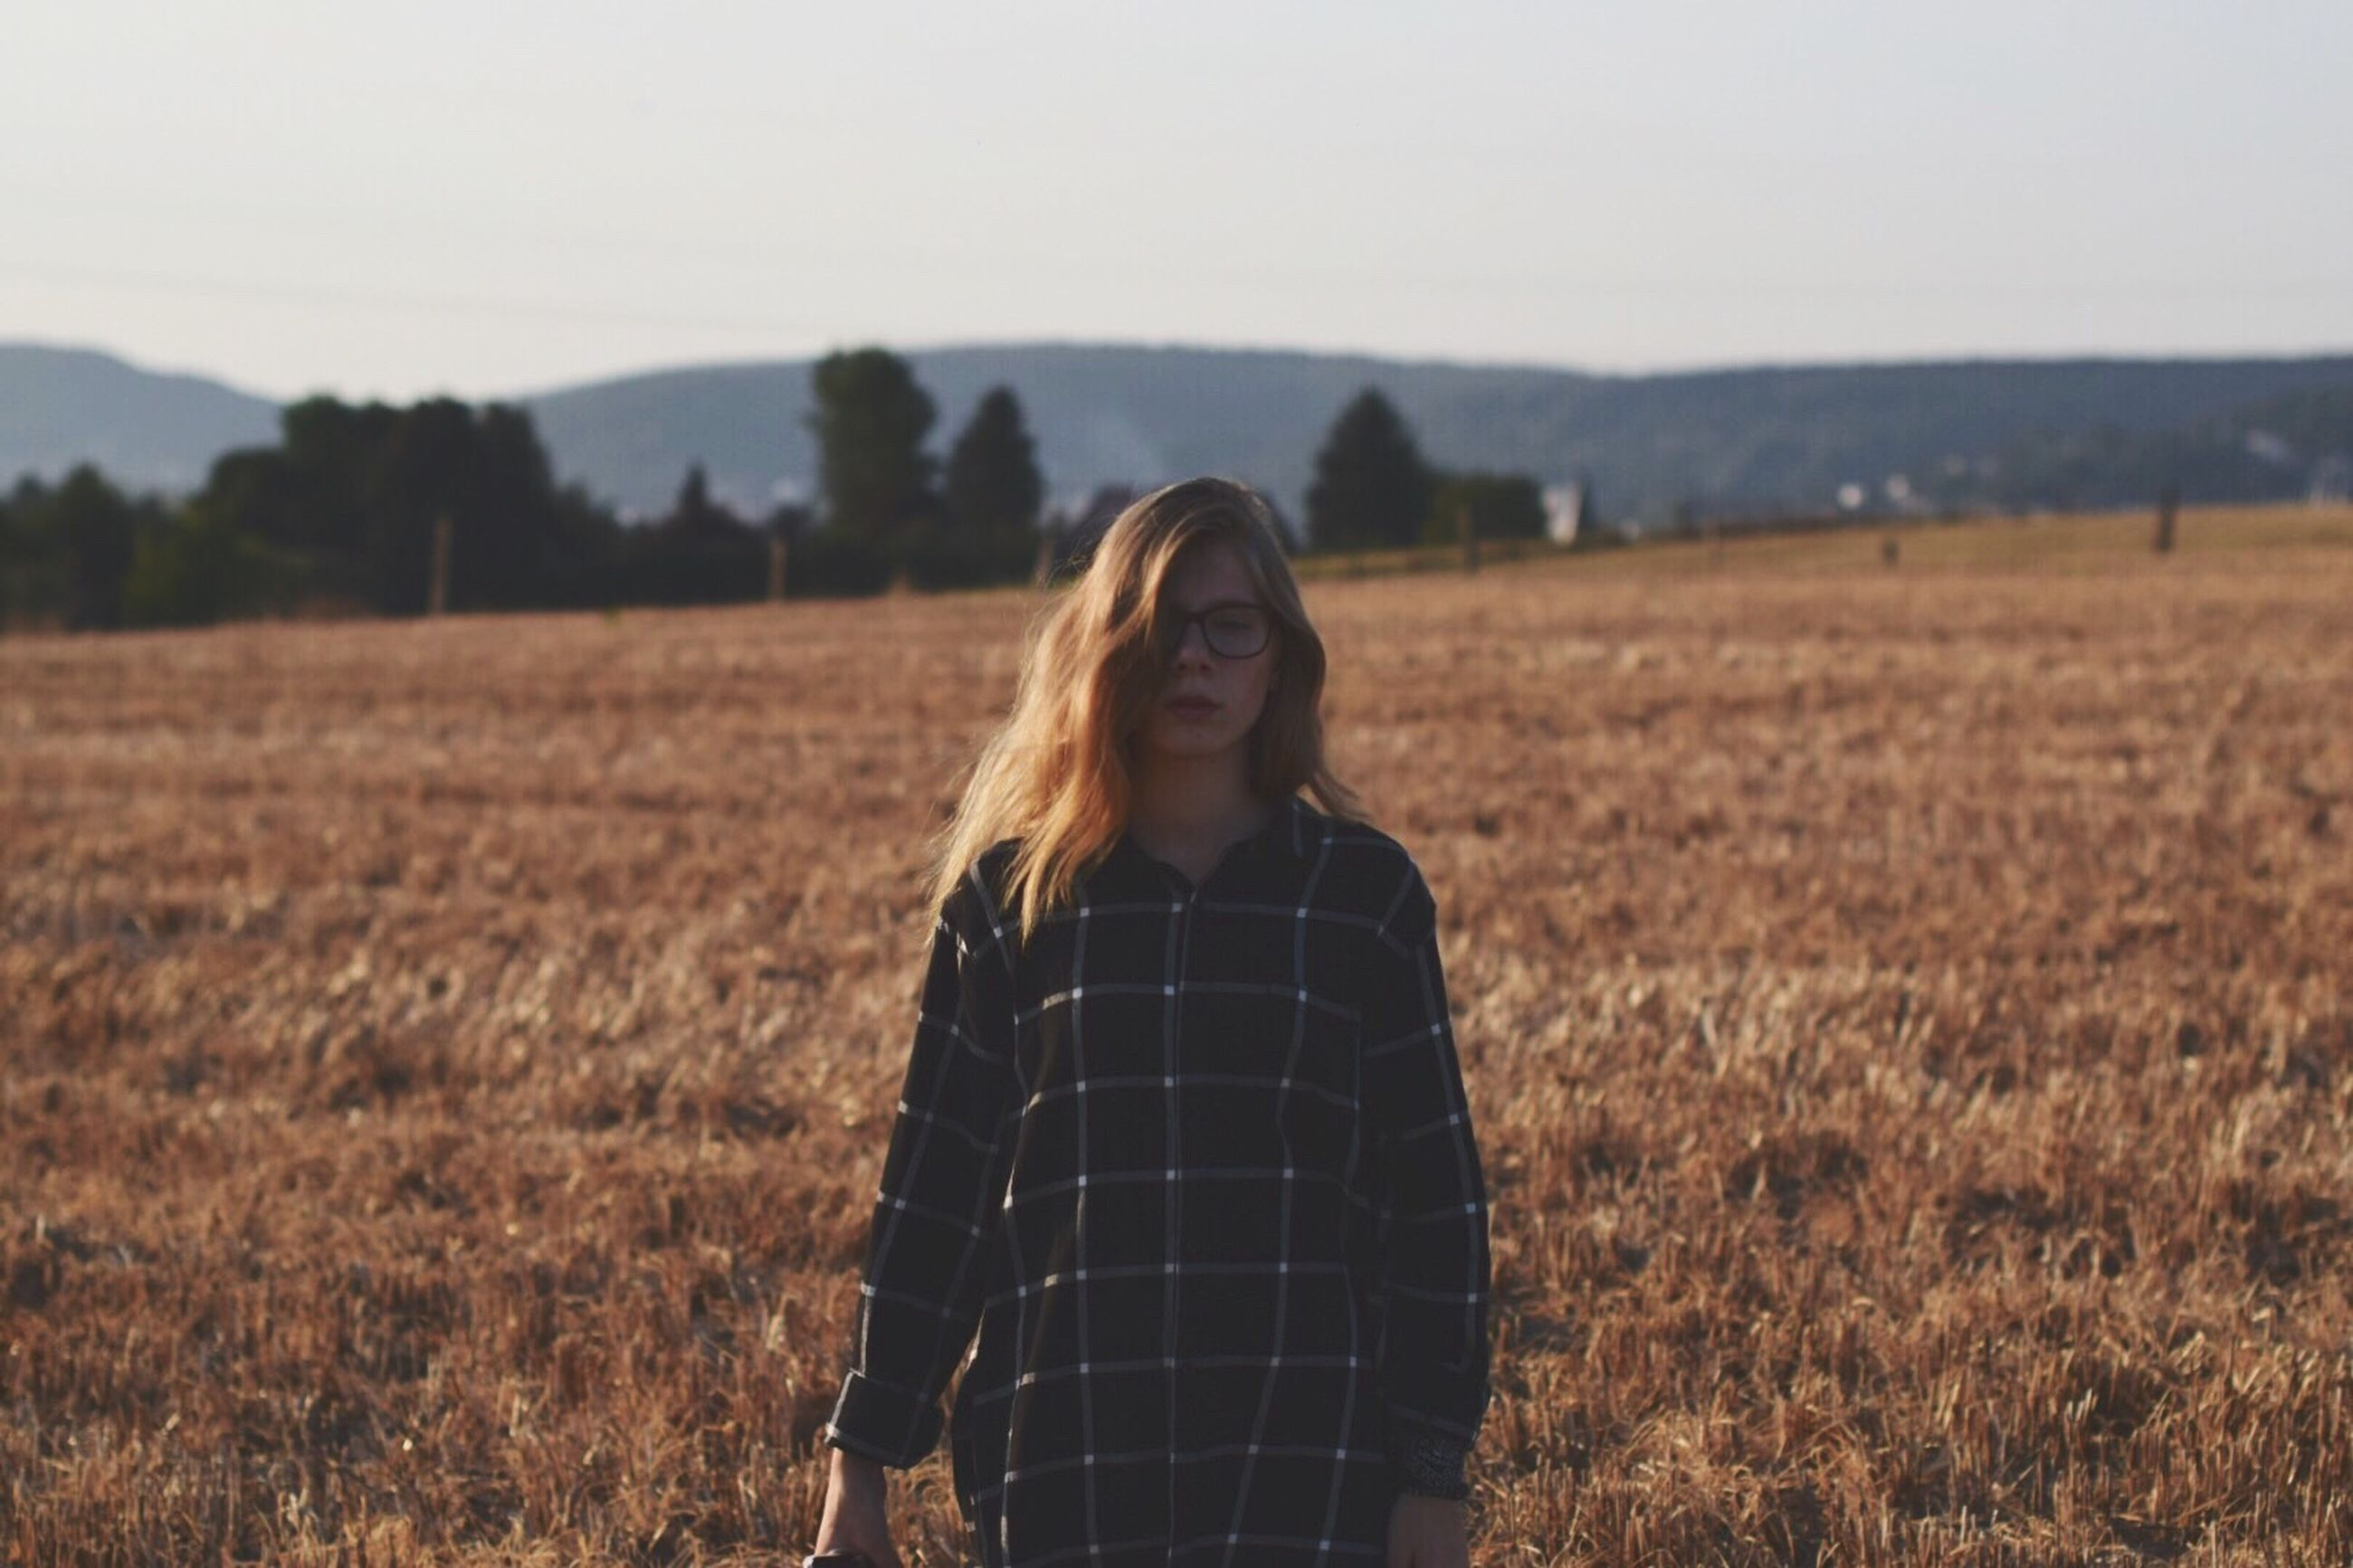 field, crop, landscape, rural scene, grass, agriculture, focus on foreground, front view, cultivated land, leisure activity, waist up, standing, casual clothing, grassy, farm, mountain, long hair, clear sky, nature, harvesting, tranquility, person, sky, scenics, growth, young adult, outdoors, beauty in nature, day